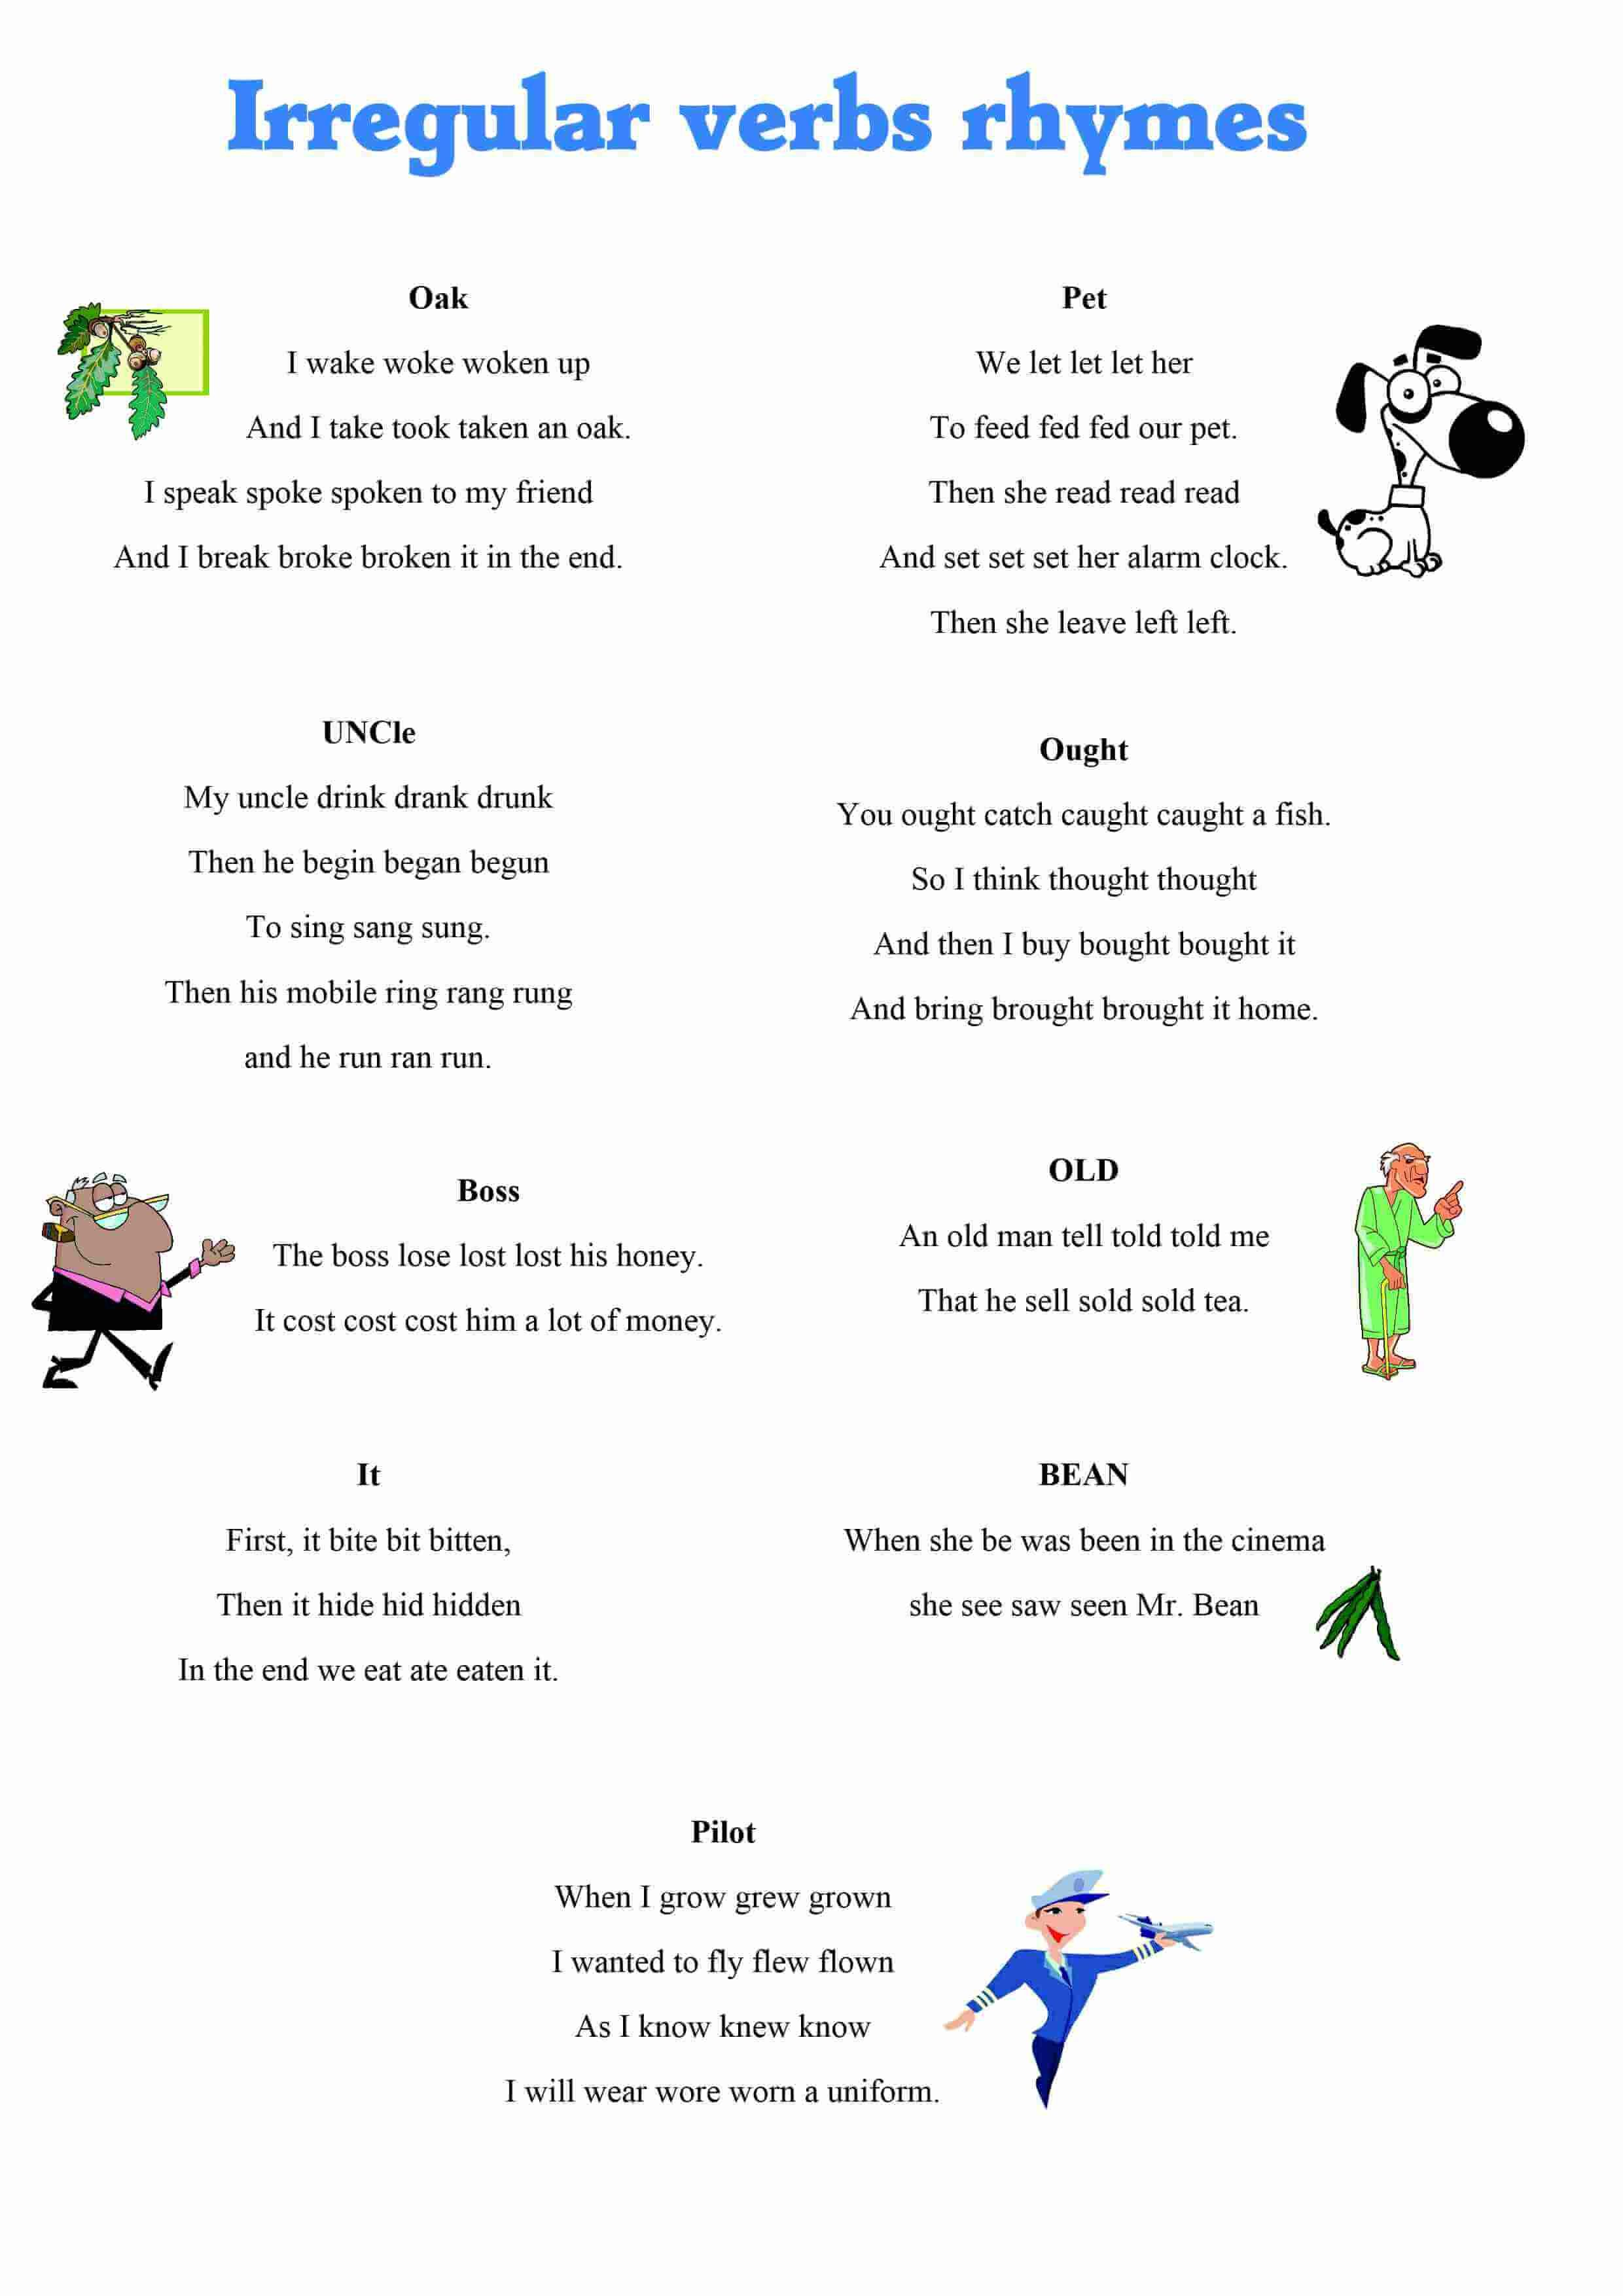 worksheet Irregular Verbs Worksheets irregular verbs rhymes picture web english language esl efl web